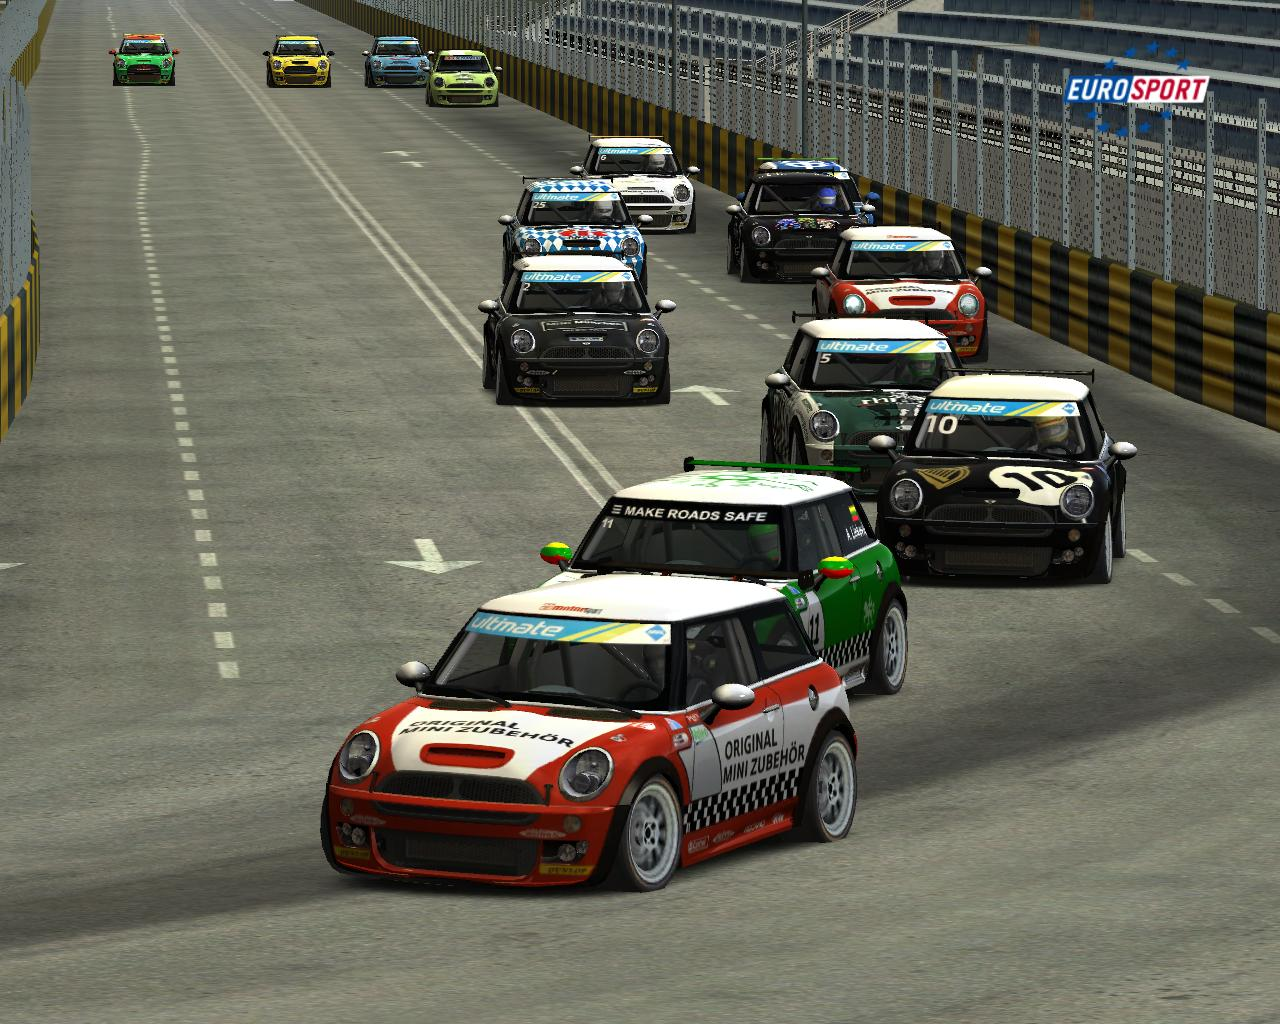 Club Racing - Mini Friday @ Macau